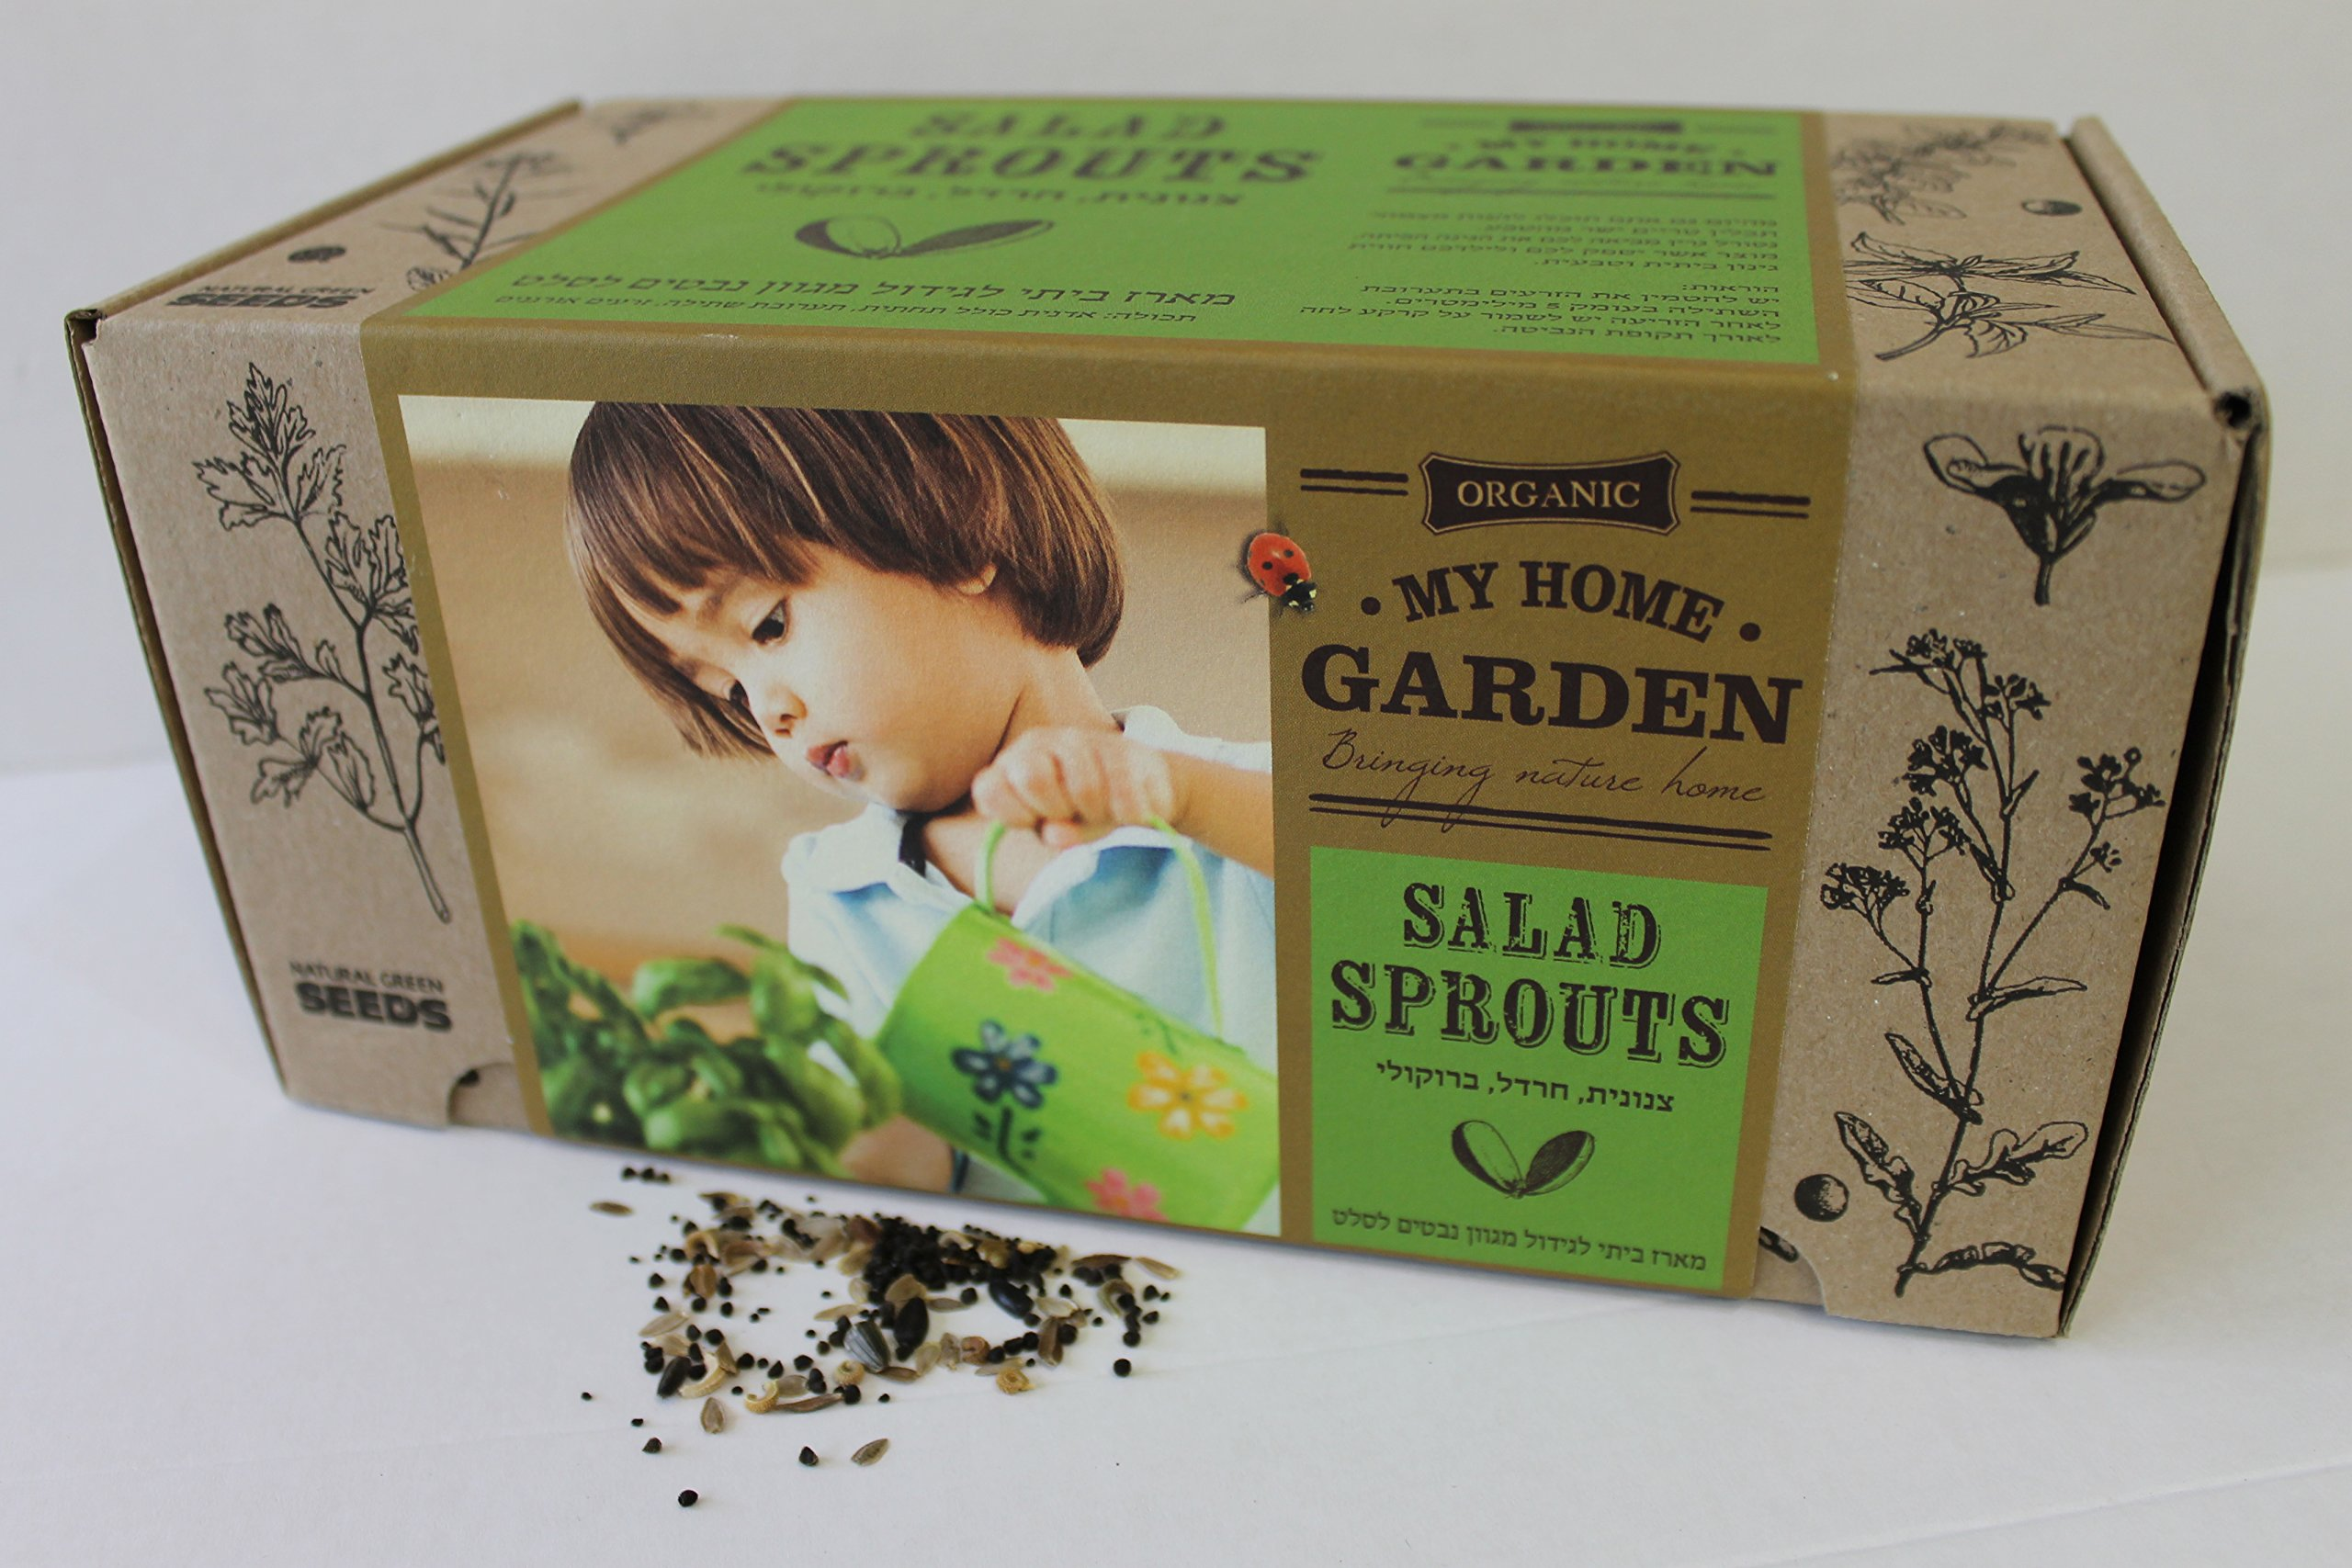 Natural Green Seeds Sprouts Garden Kit| Organic sprout Seeds non-GMO certified| DIY Gardening set Including Planter and Compressed Soil